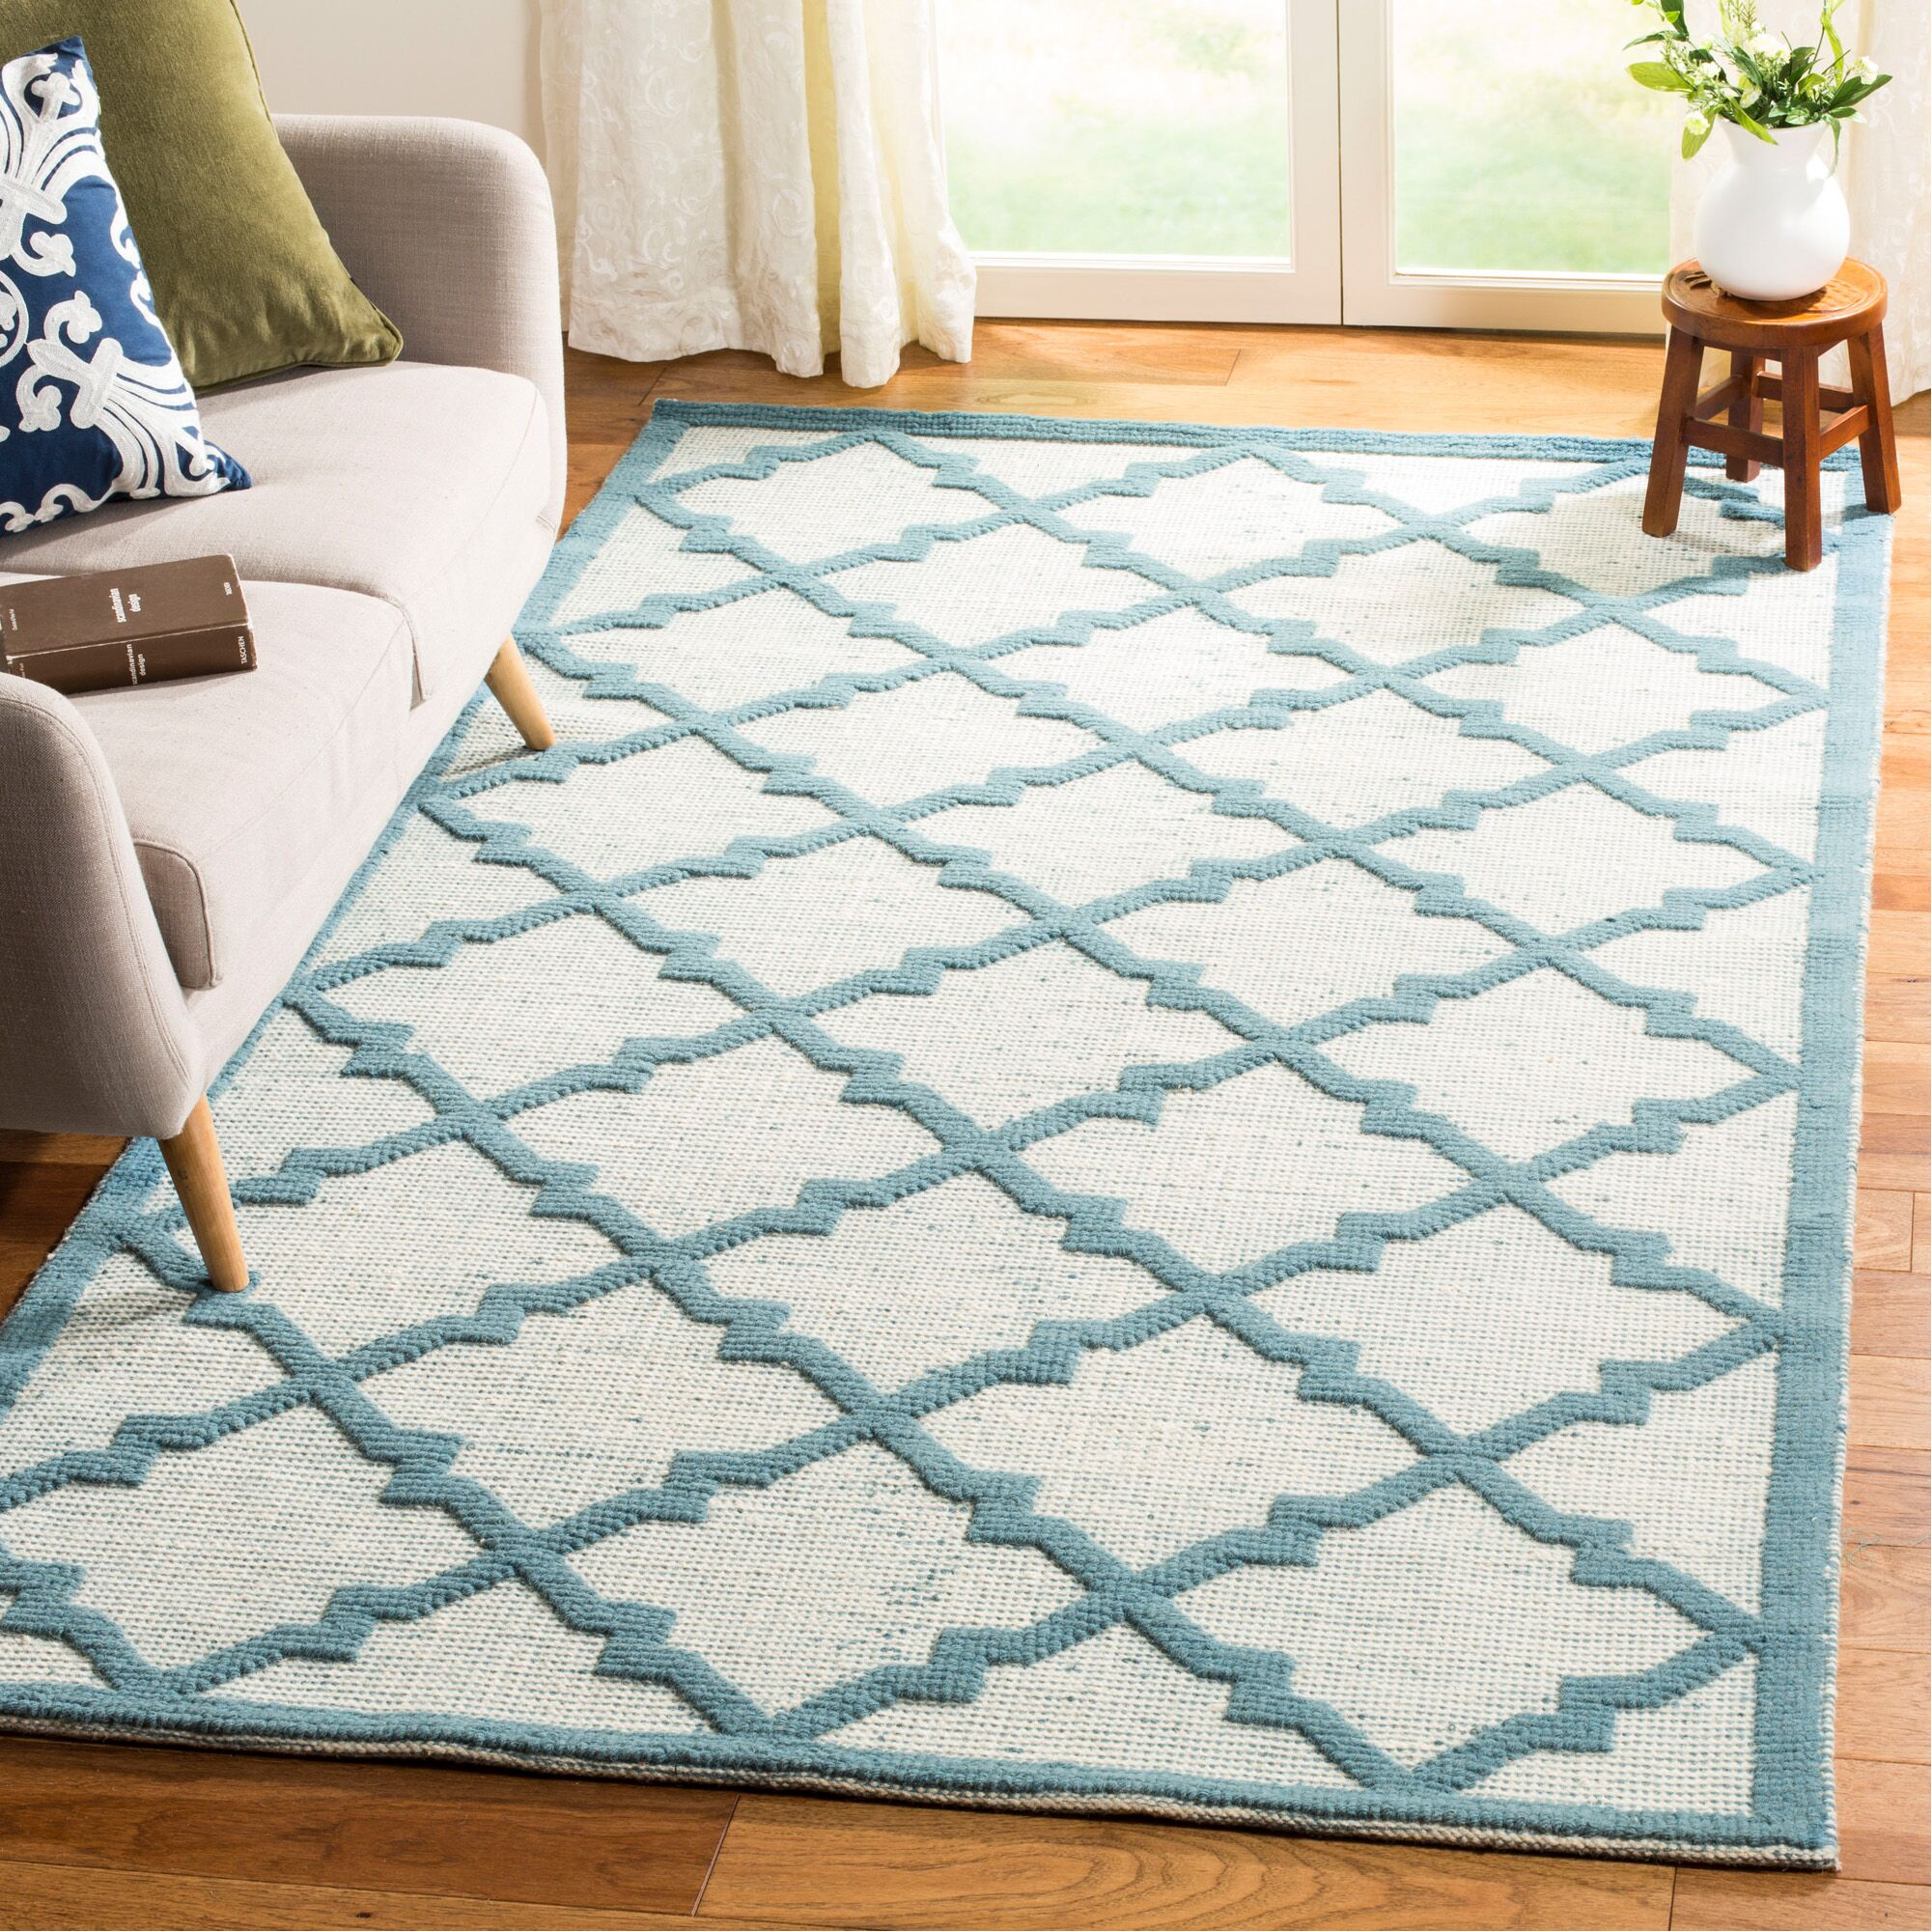 Martha Stewart Puzzle Floral Ivory/Blue  Rug Rug Size: Rectangle 5' x 8'